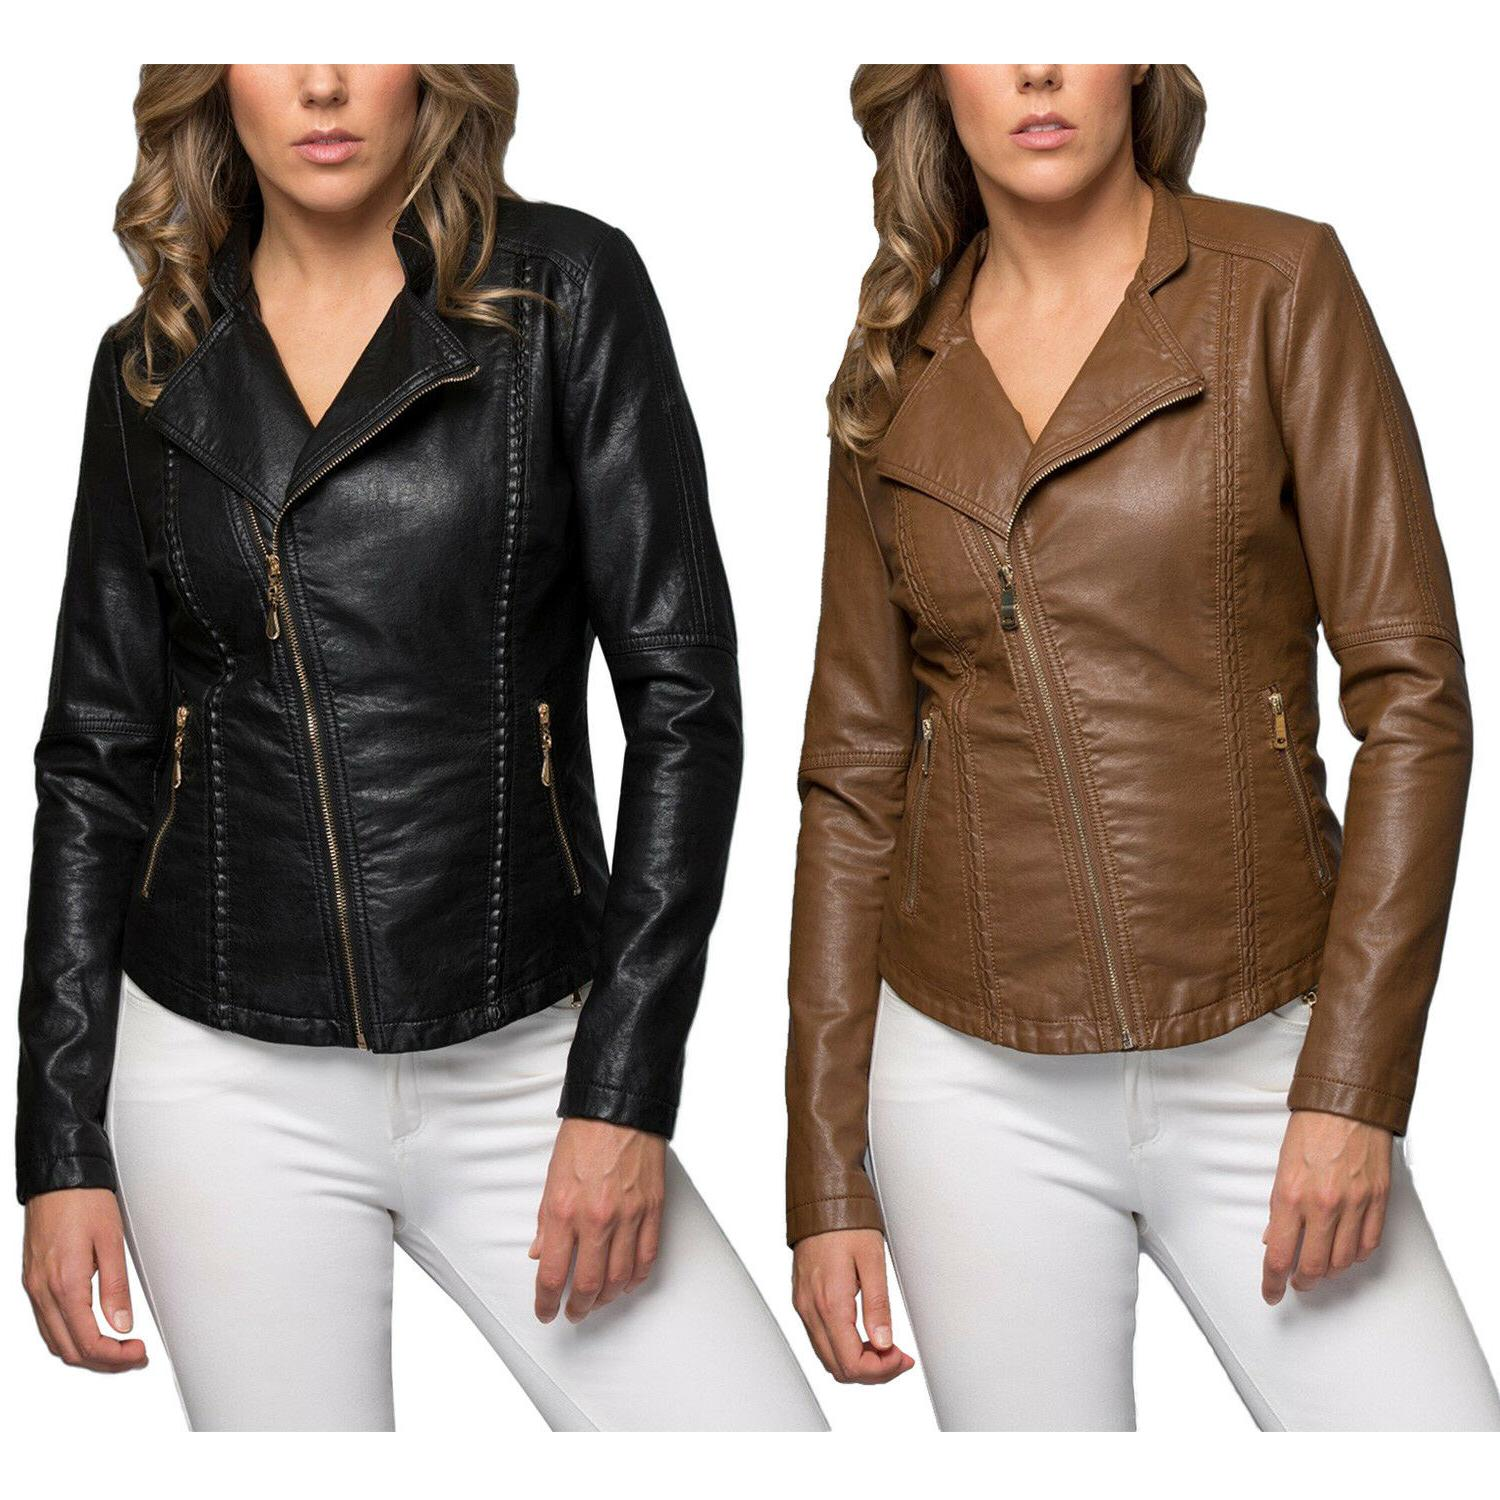 KOGMO Women's Double Breasted Faux Leather Biker Short Coat